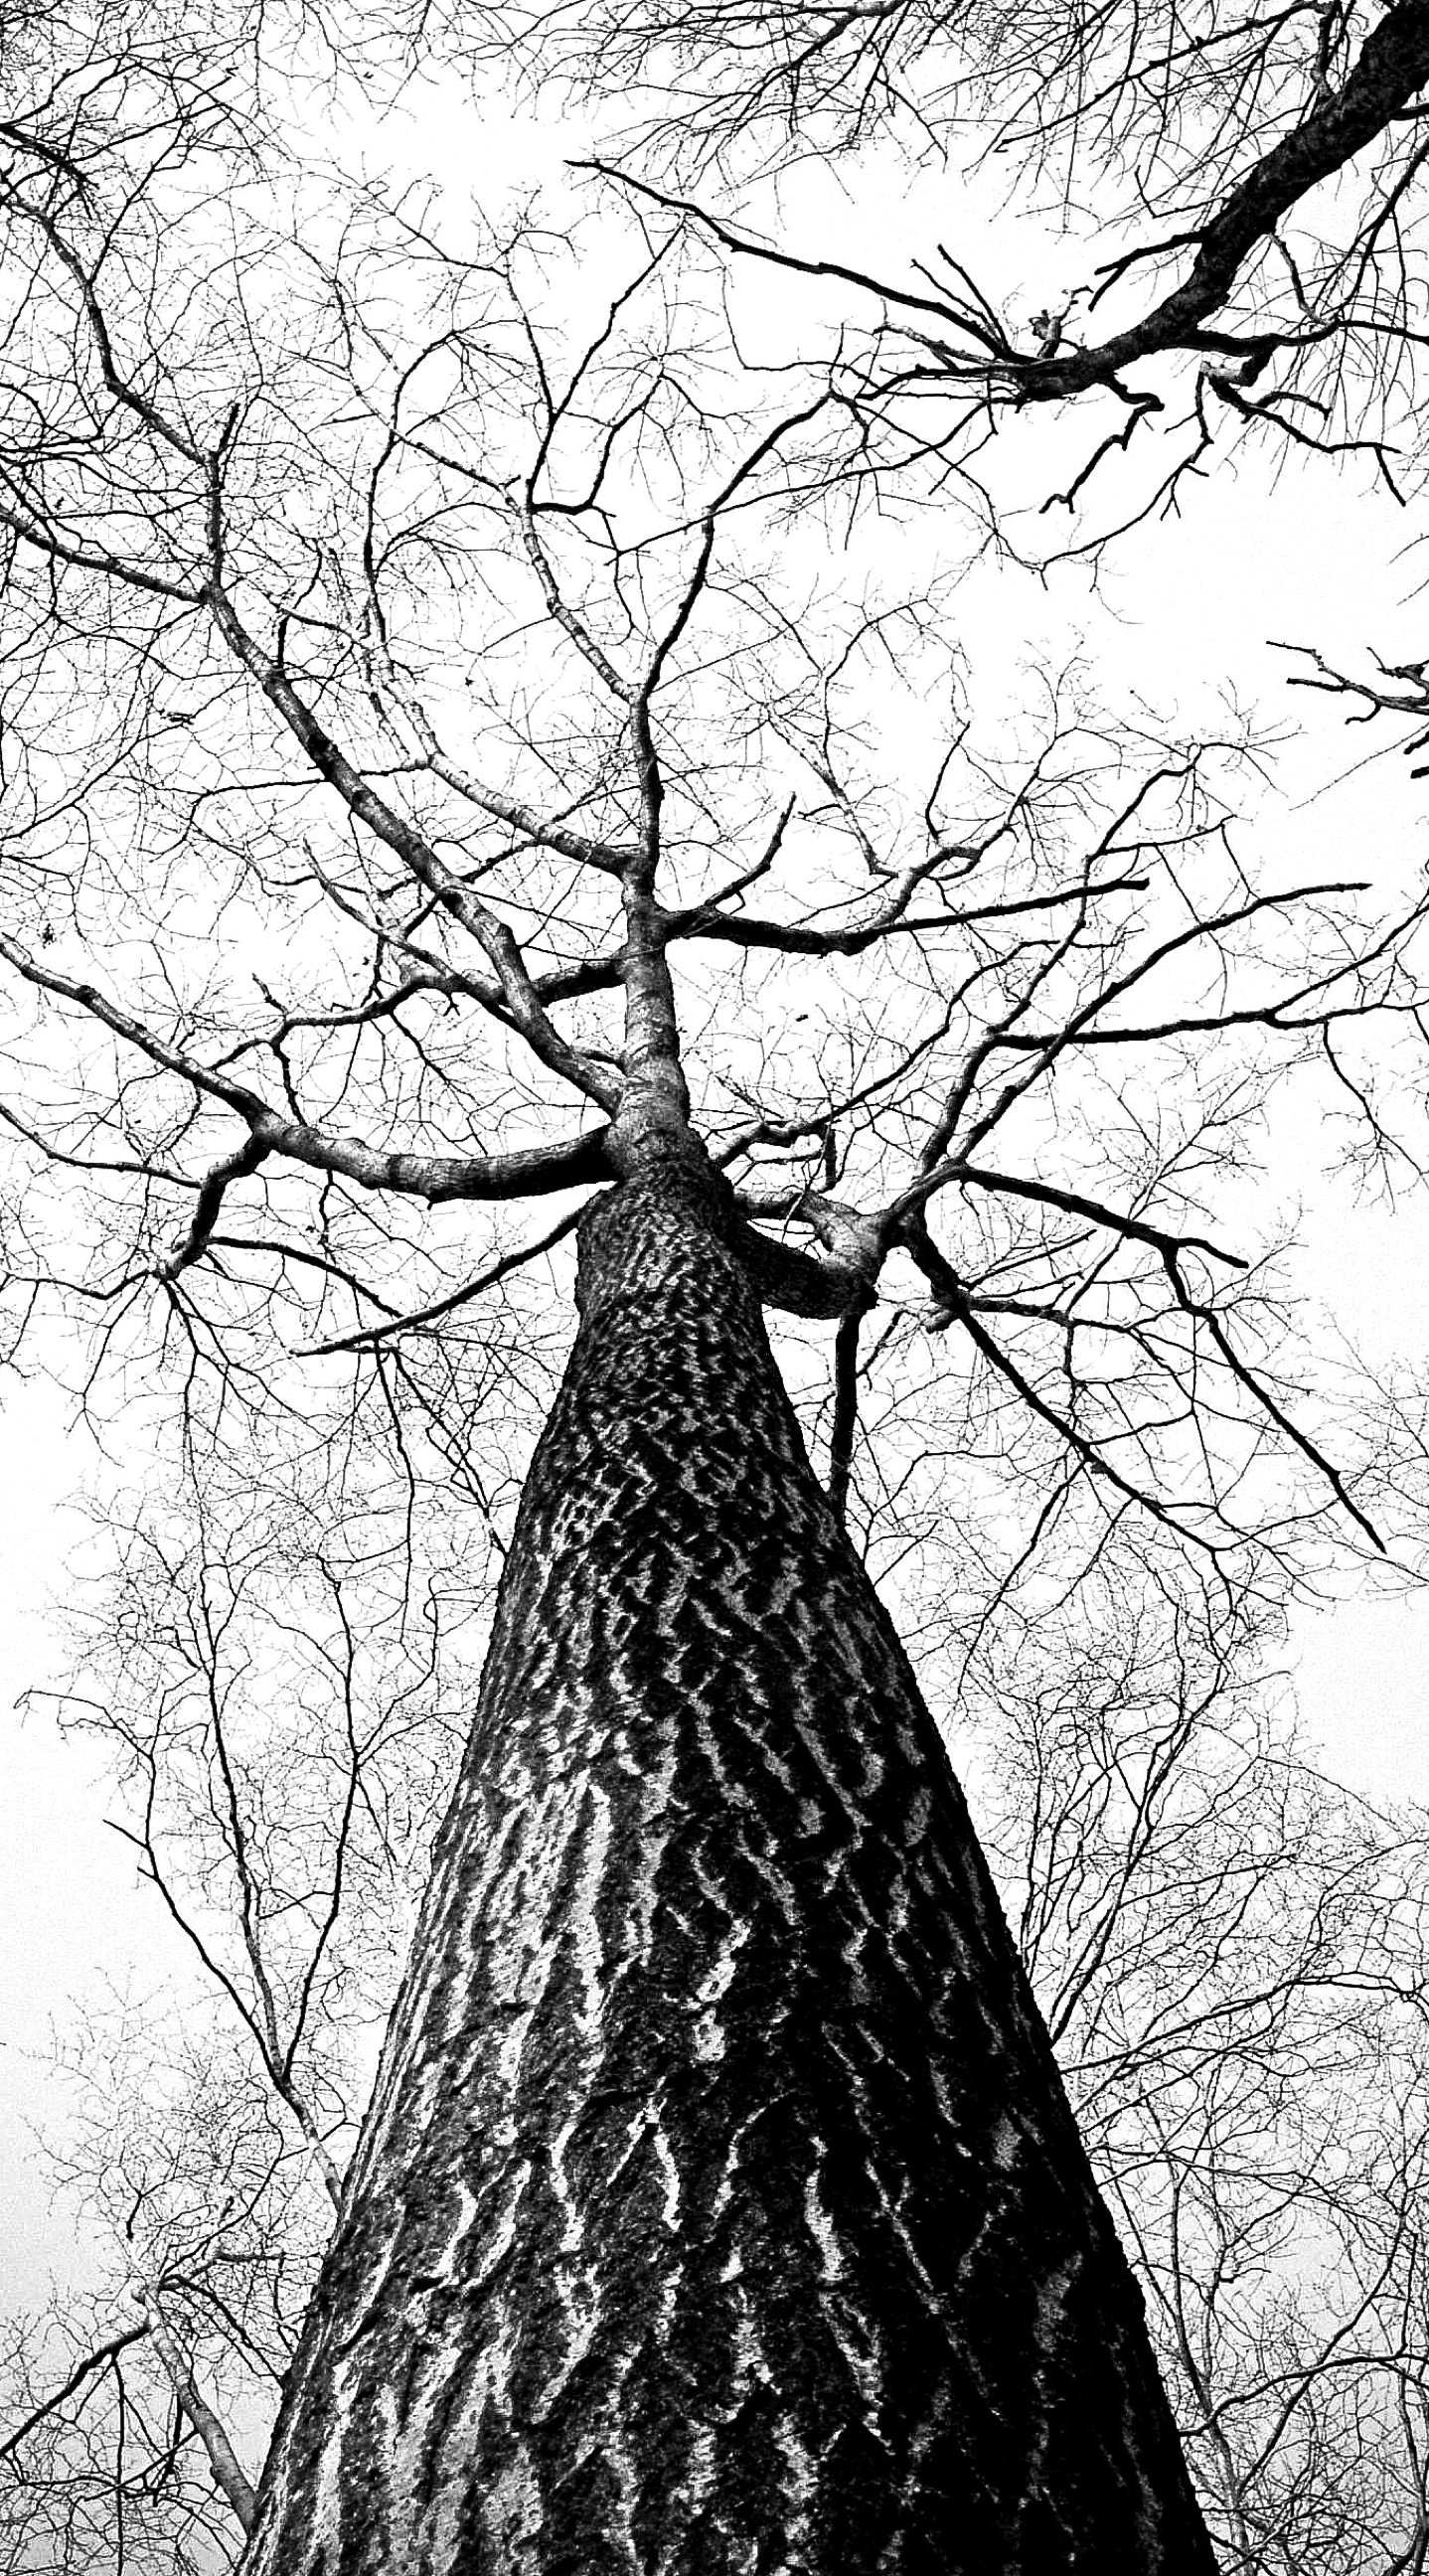 Iphone Wallpaper Free Download Black And White Tree Hd 1438x2592 Download Hd Wallpaper Wallpapertip